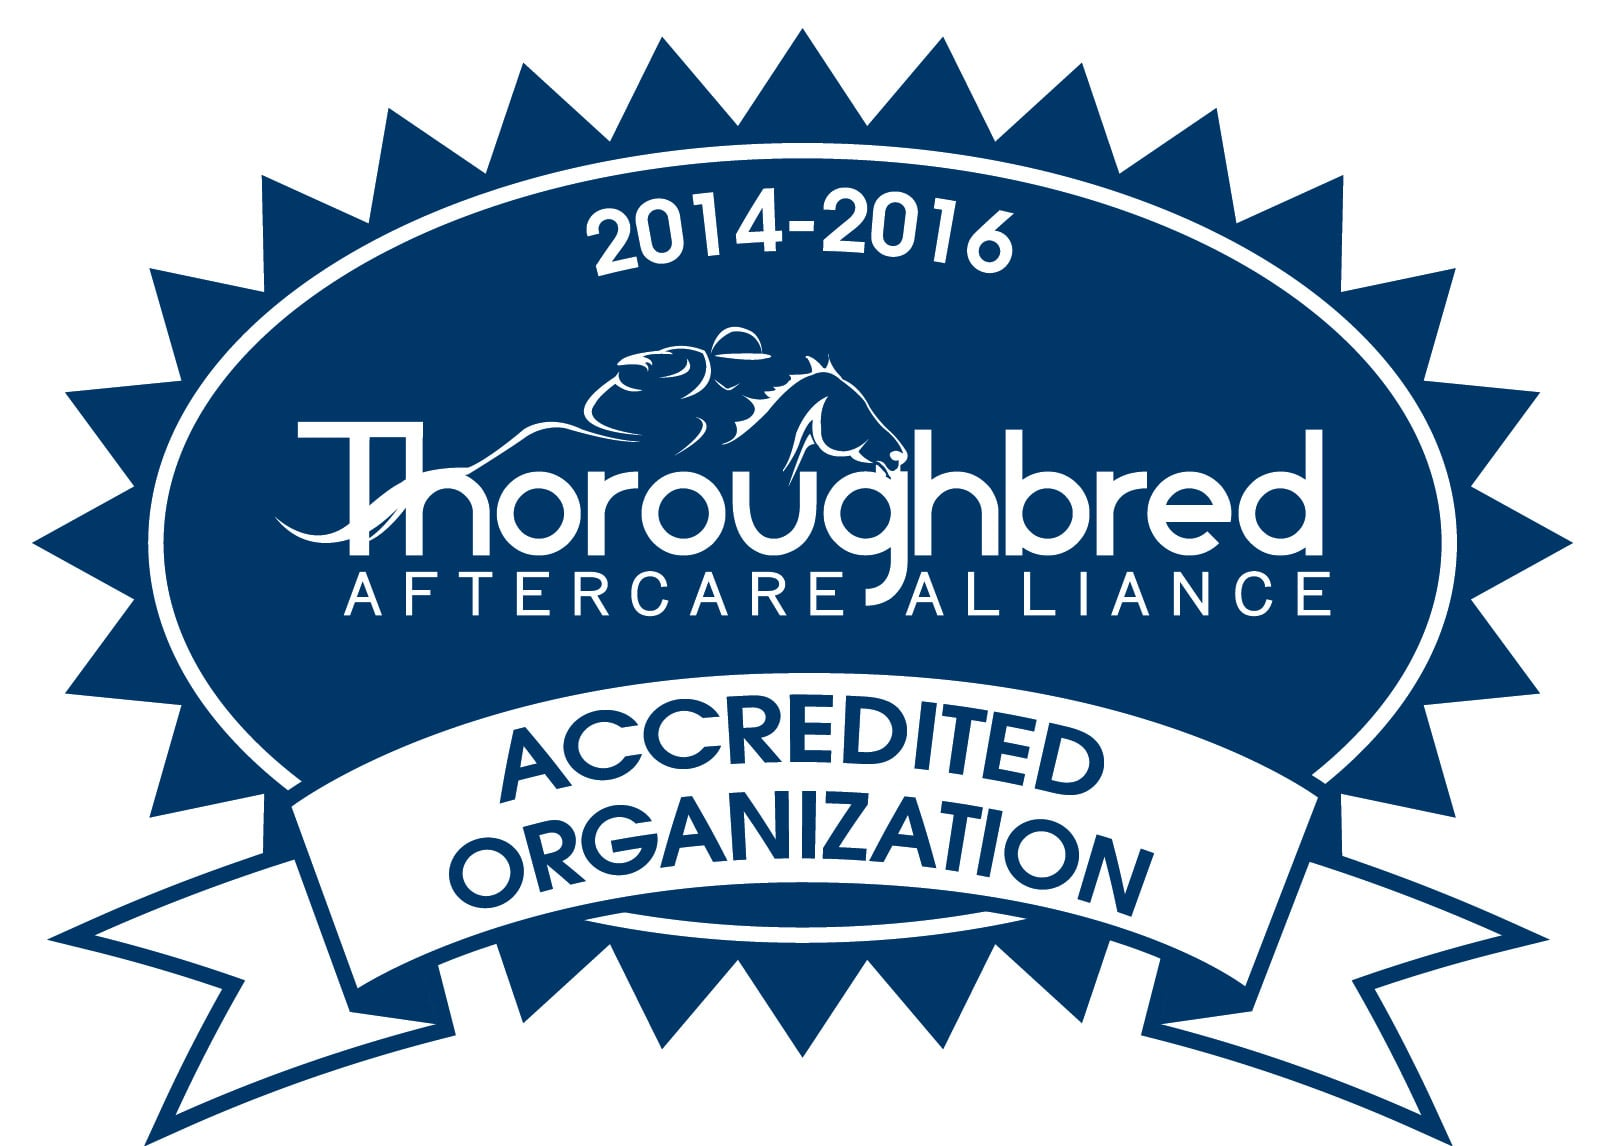 Finger Lakes Thoroughbred Adoption Program (FLTAP) is accredited with the Thoroughbred Aftercare Alliance (TAA).